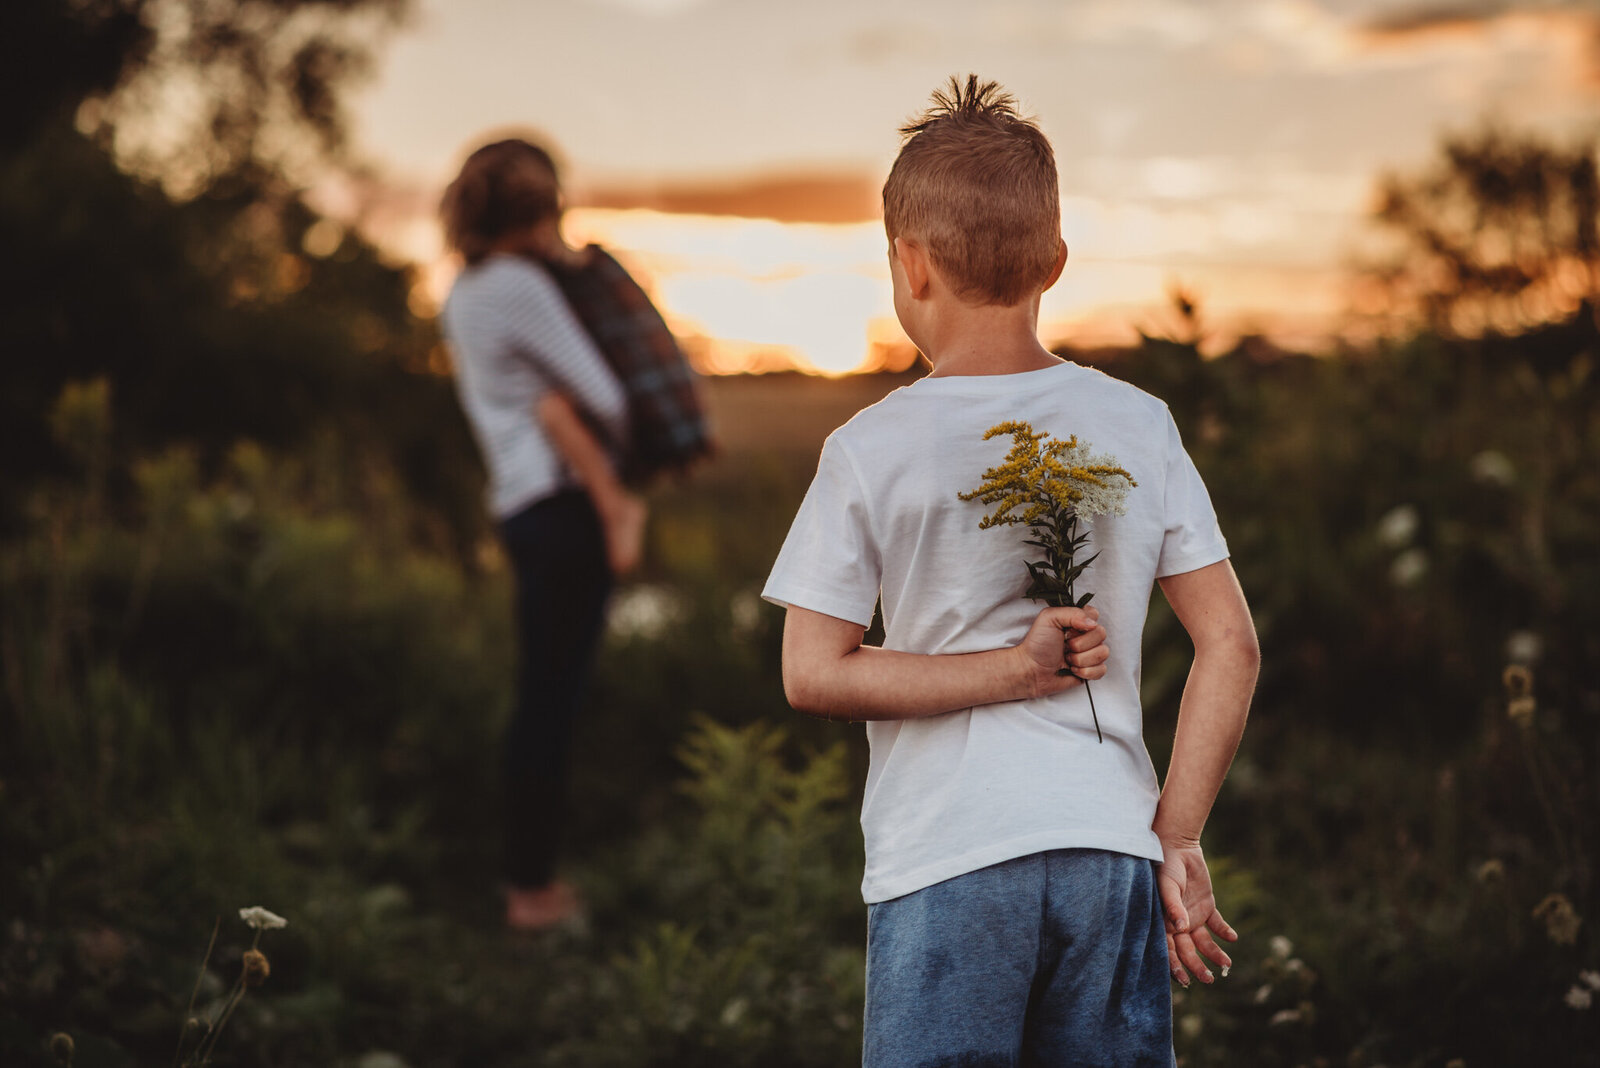 Son holding flowers behind his back for his mother at sunset